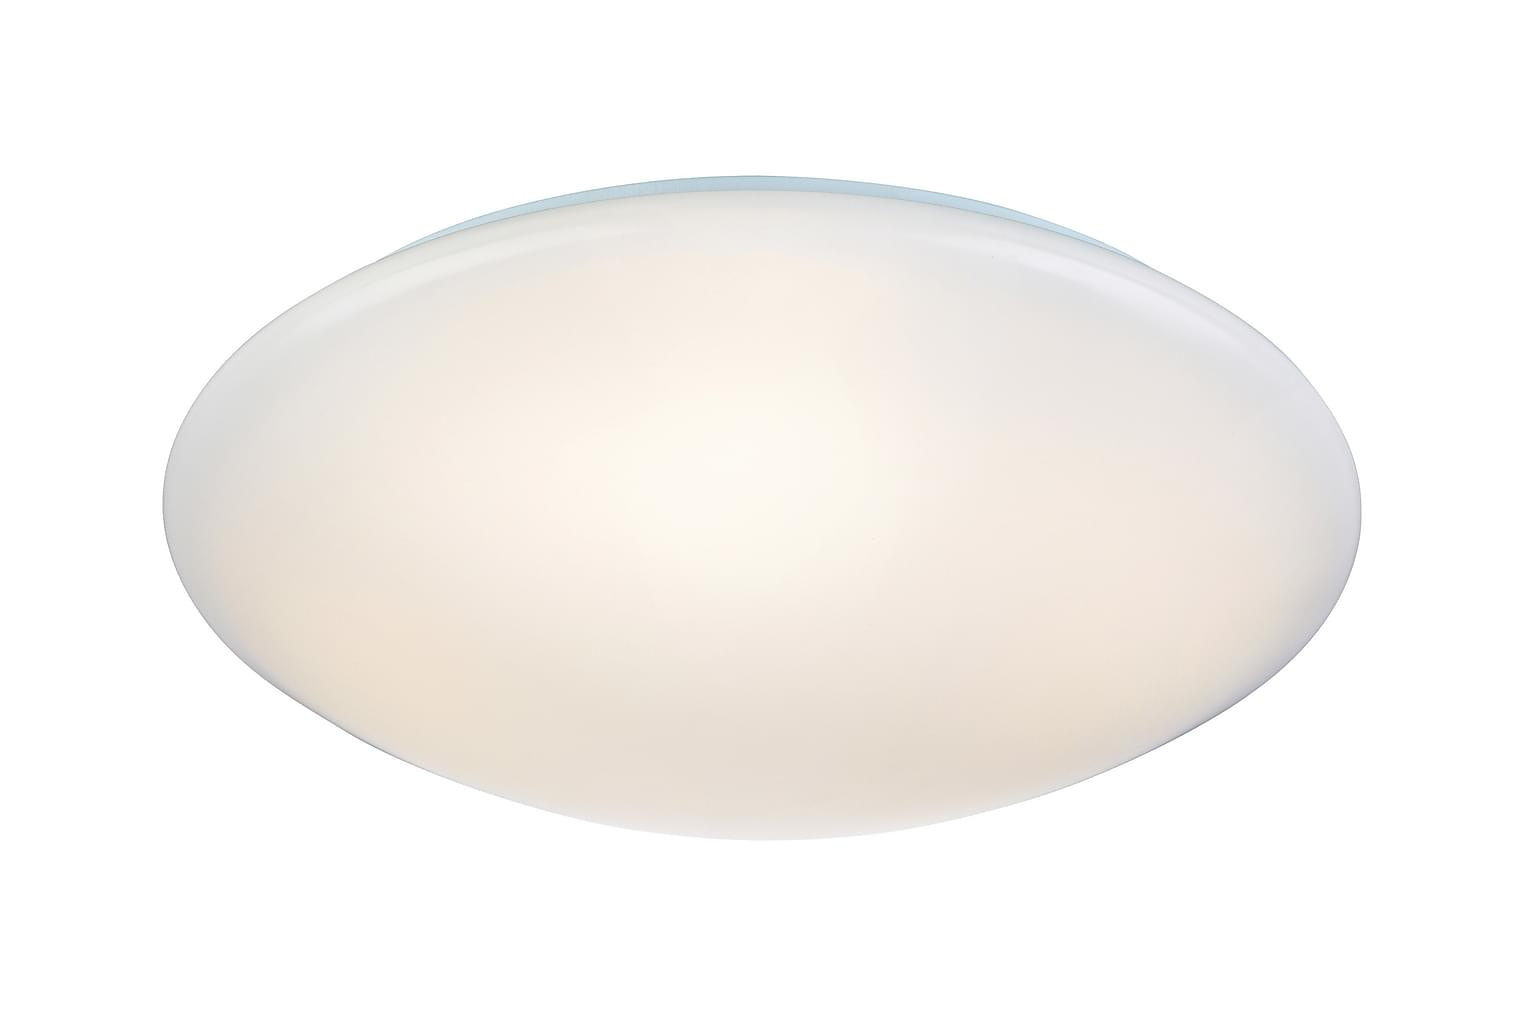 PLAIN Plafond 39 IP44 Vit